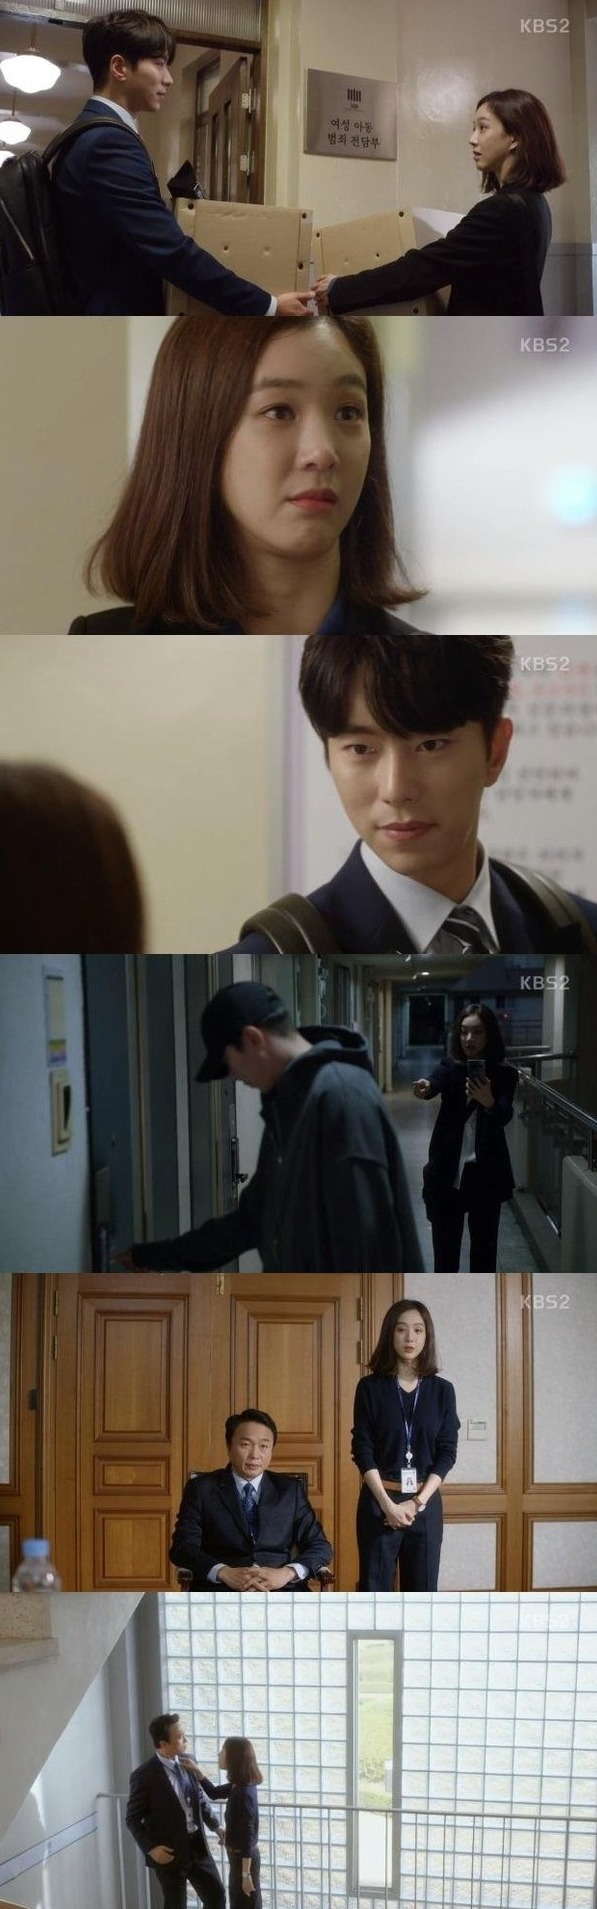 [Spoiler] Added episode 1 captures for the Korean drama